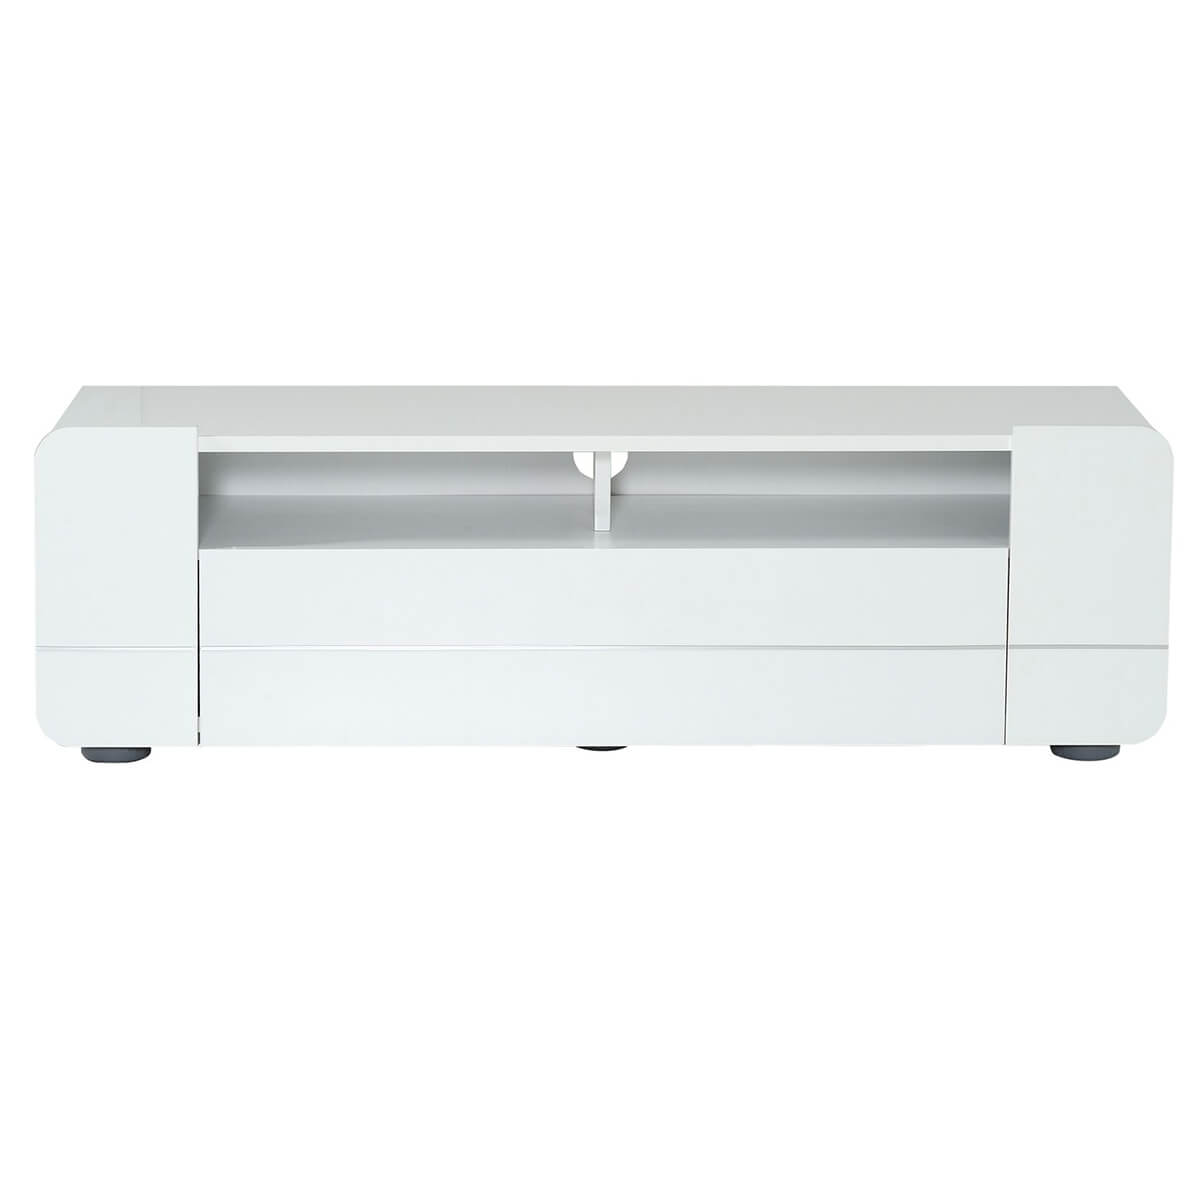 Bump TV Unit with Storage Flap 154cm White High Gloss